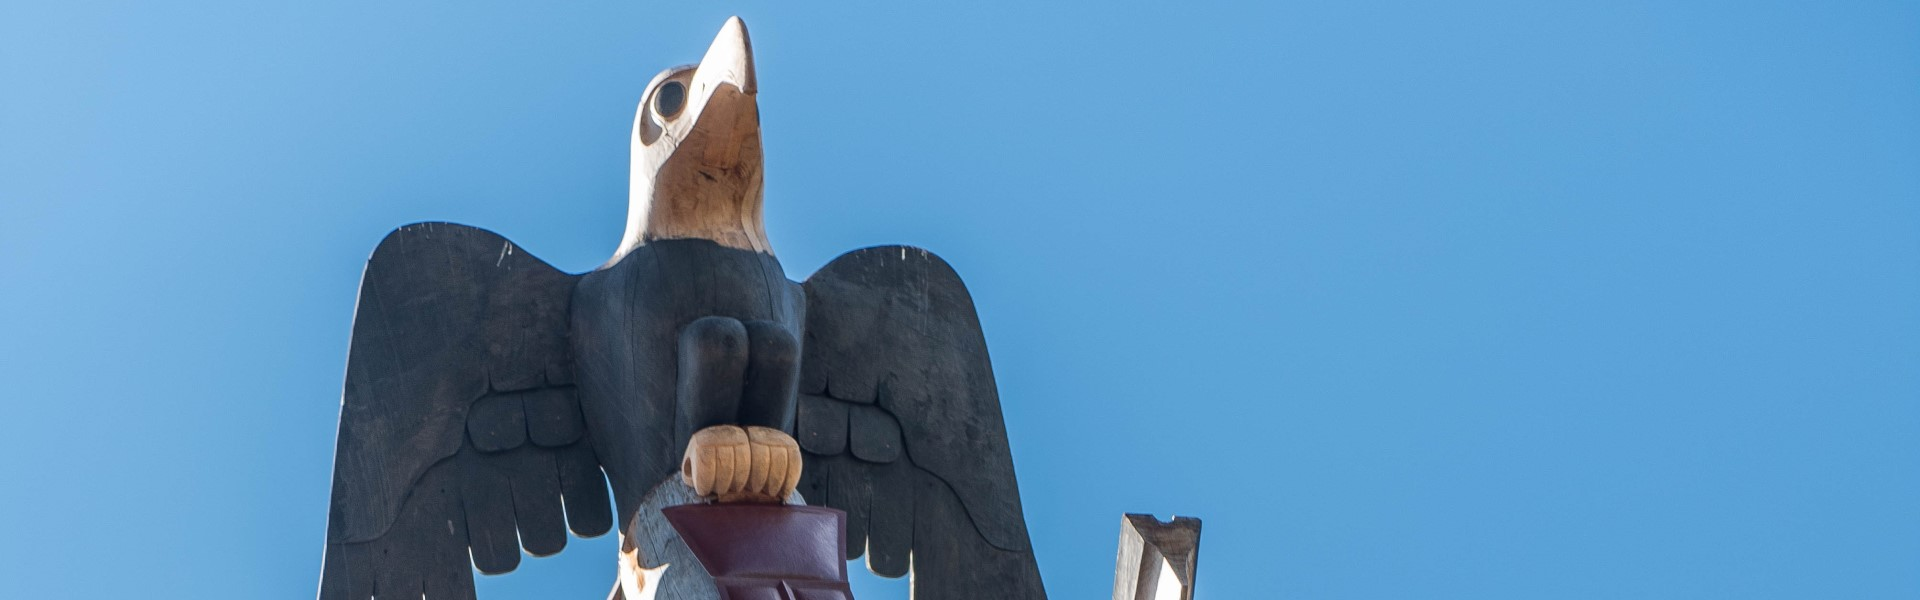 Close-up of the eagle on top of Reconciliation Pole, located on UBC Vancouver campus